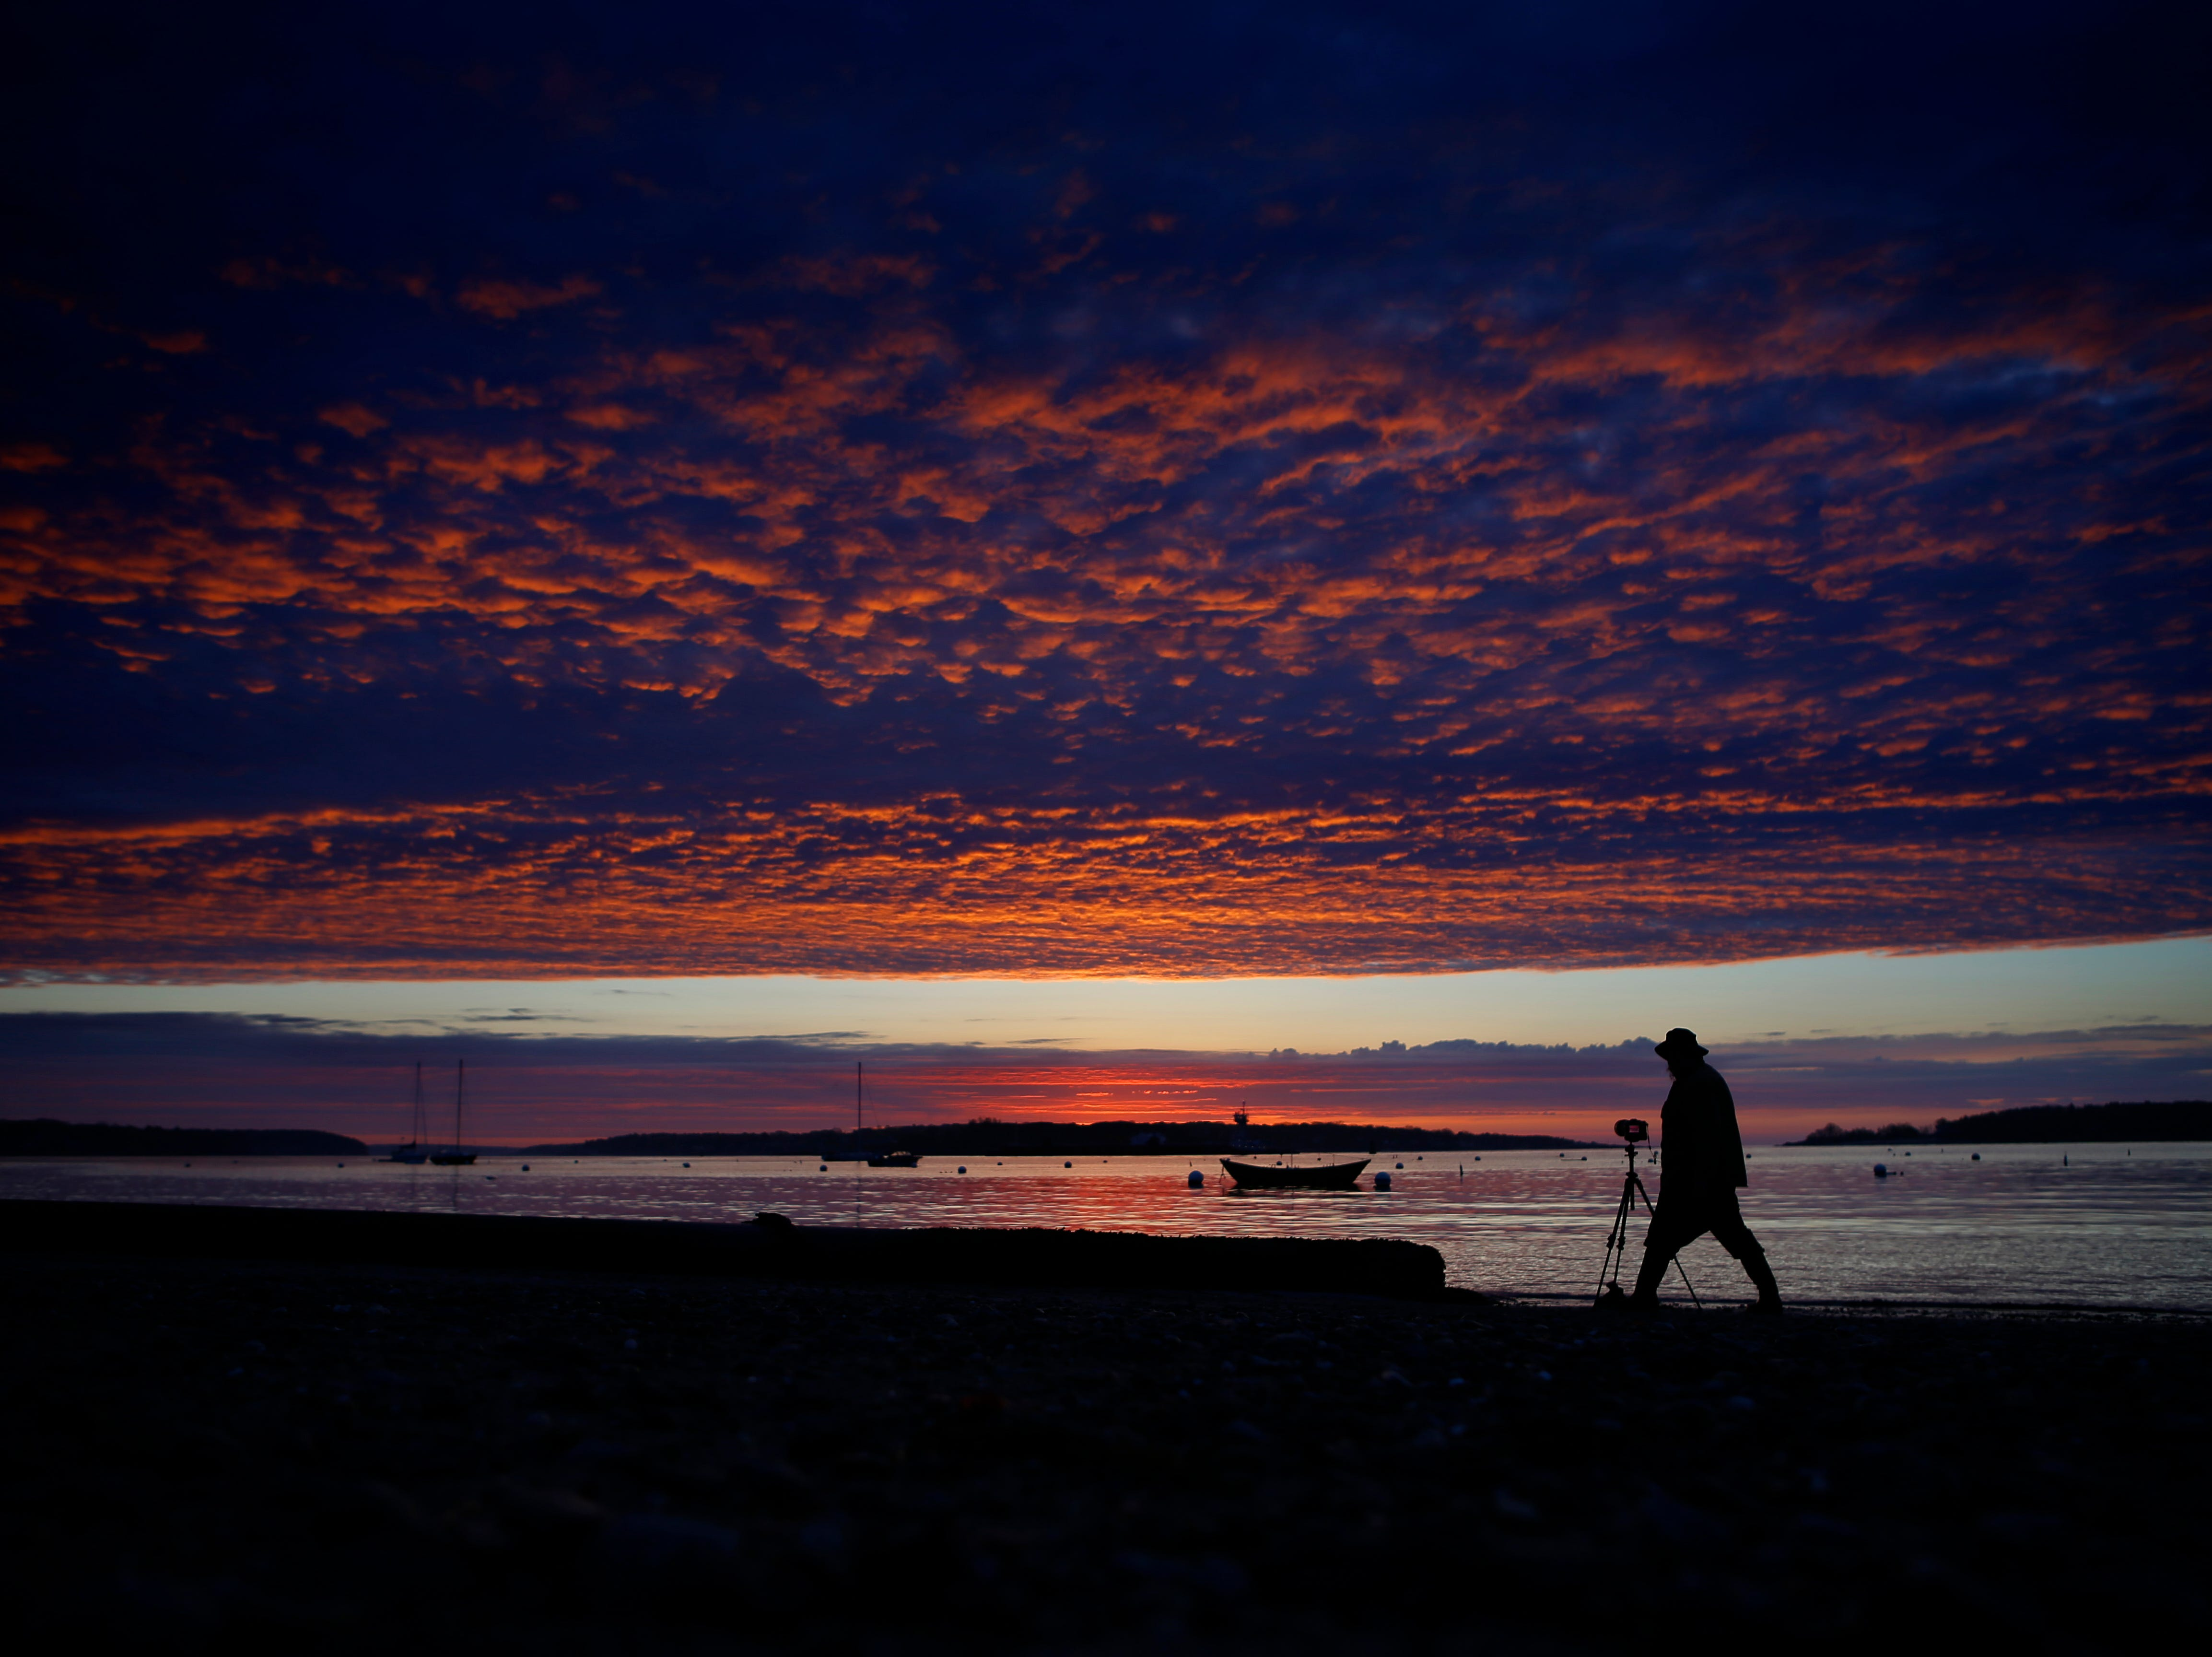 A mackerel sky is colored by the first rays of sunlight as Chuck Johns photographs a dory moored off Willard Beach, Friday, May 17, 2019, in South Portland, Maine. The color was fleeting as rain clouds moved in shortly after sunrise. New England, like much of the country, continues to experience wetter-than-usual weather.